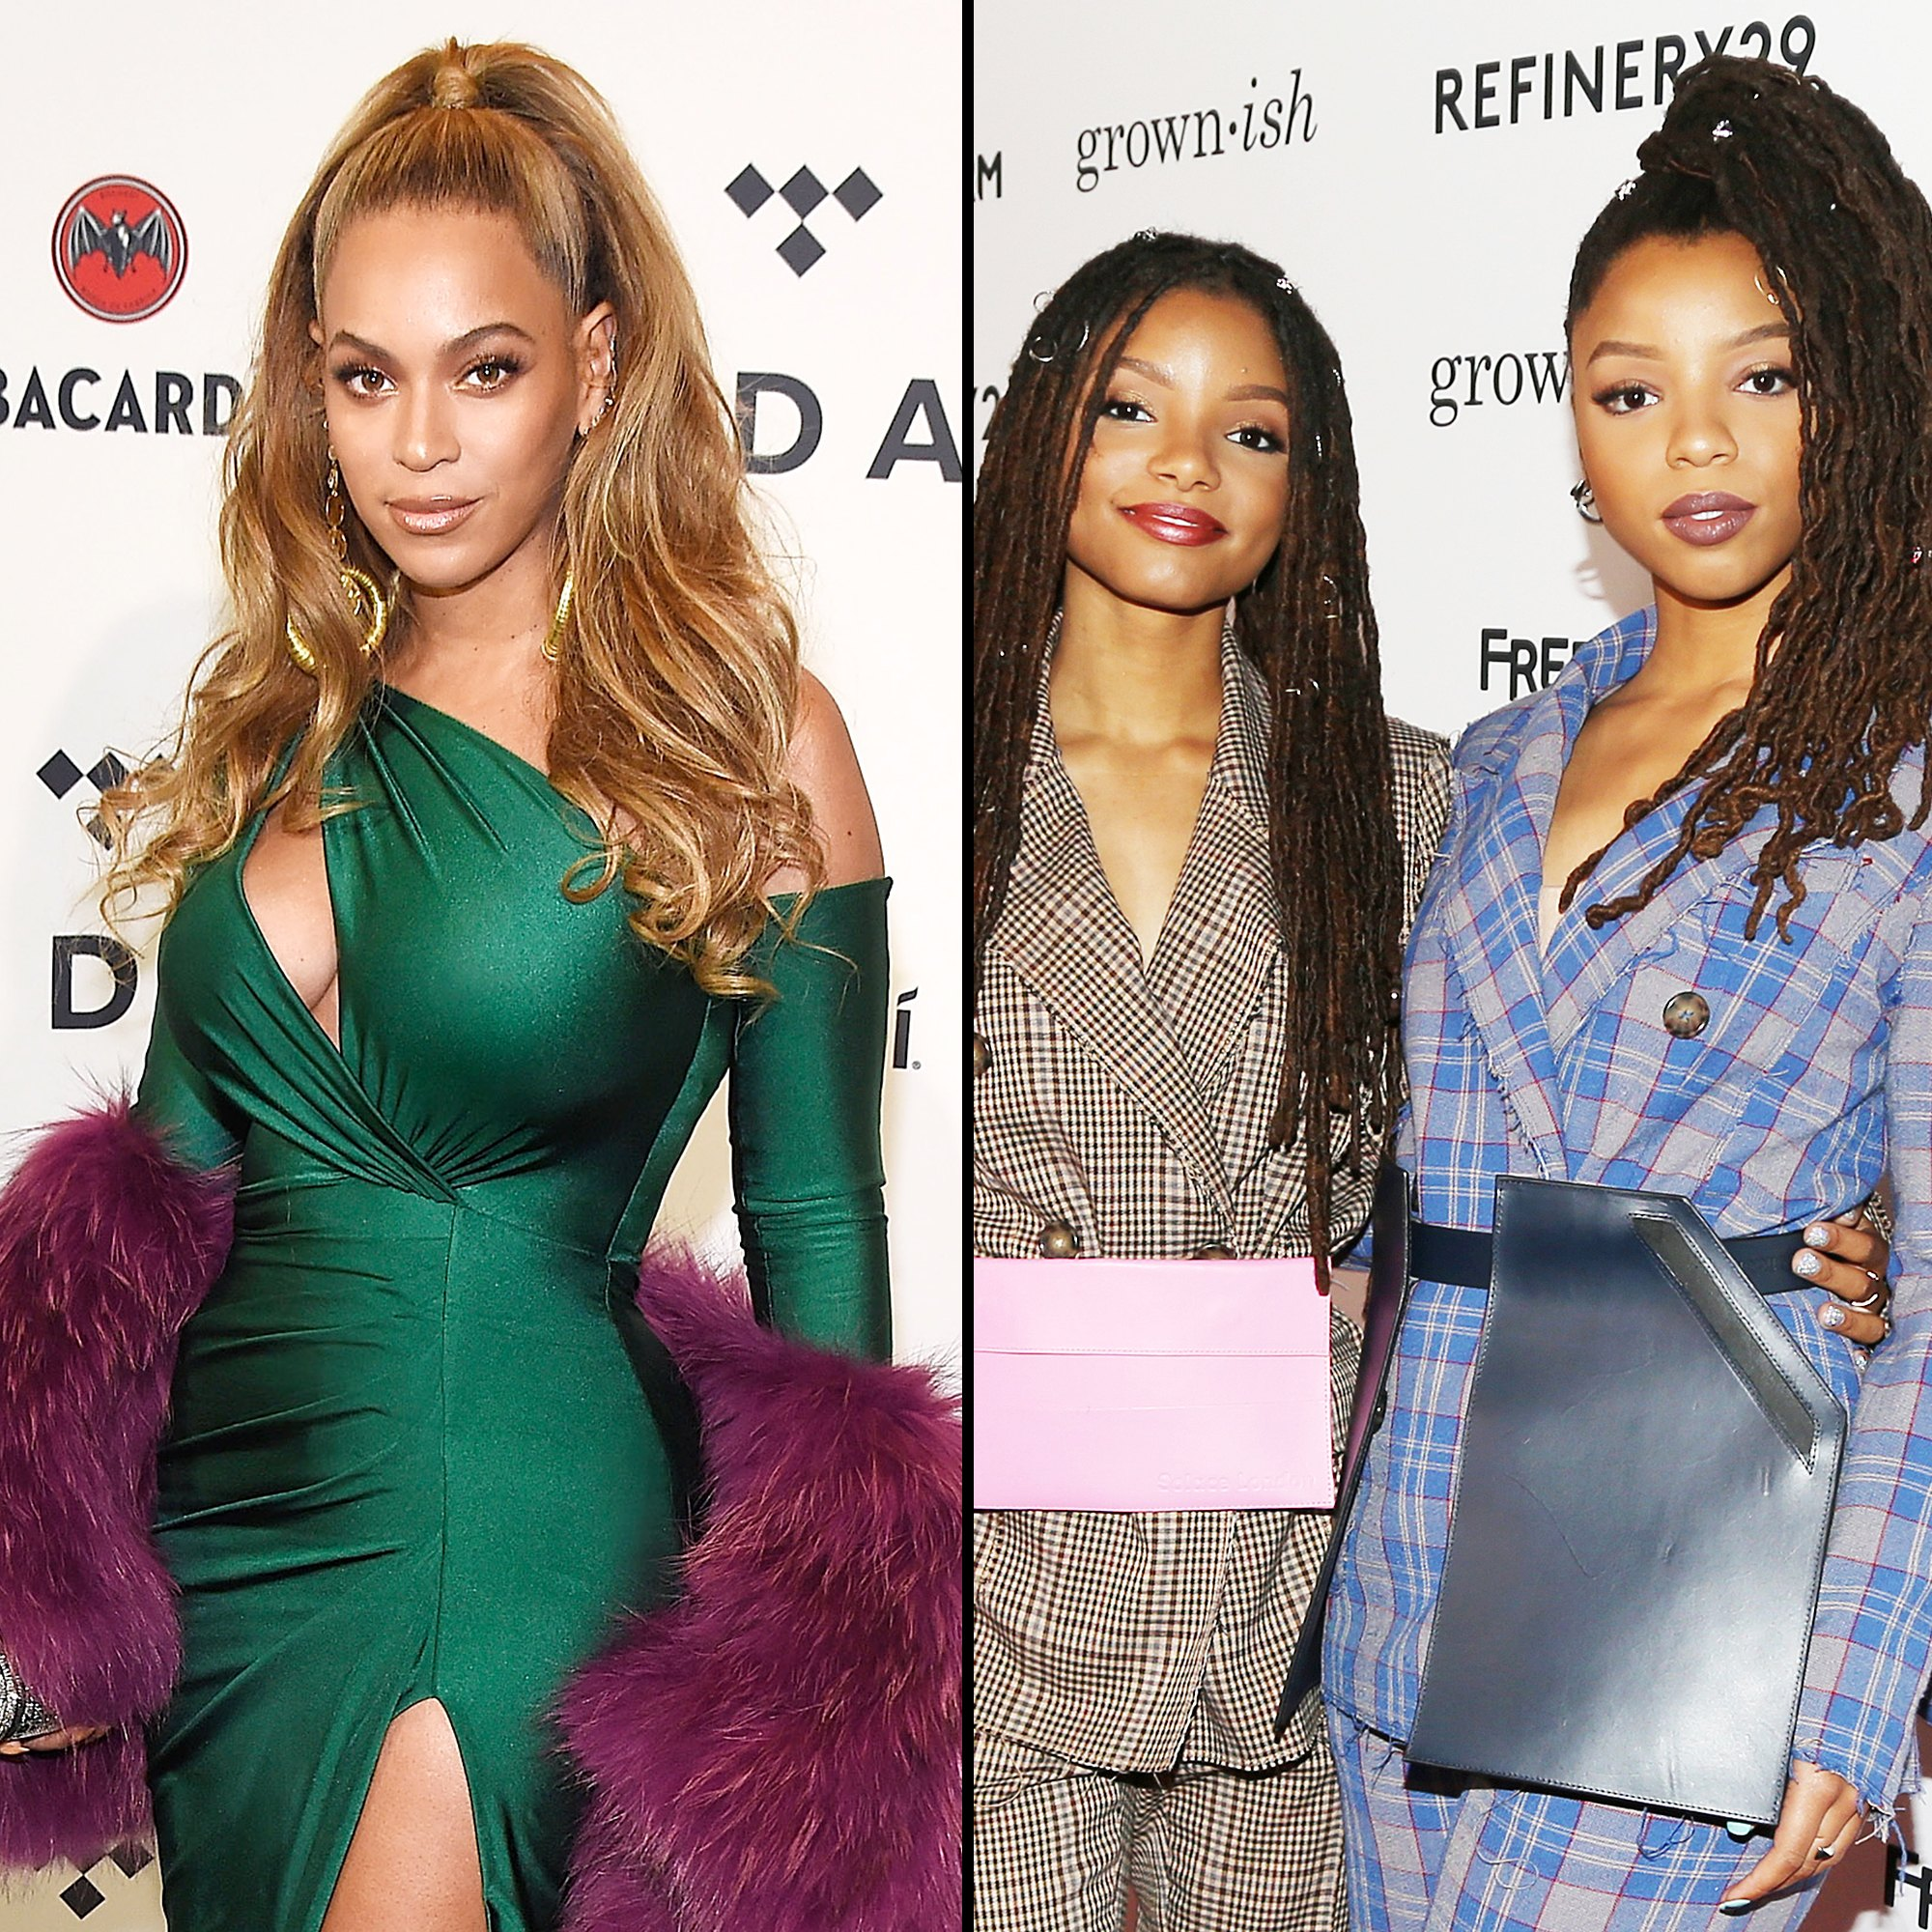 beyonces-father-gets-mad-and-leaves-interview-after-chloe-bailey-is-compared-to-his-daughter-says-its-insulting-and-more